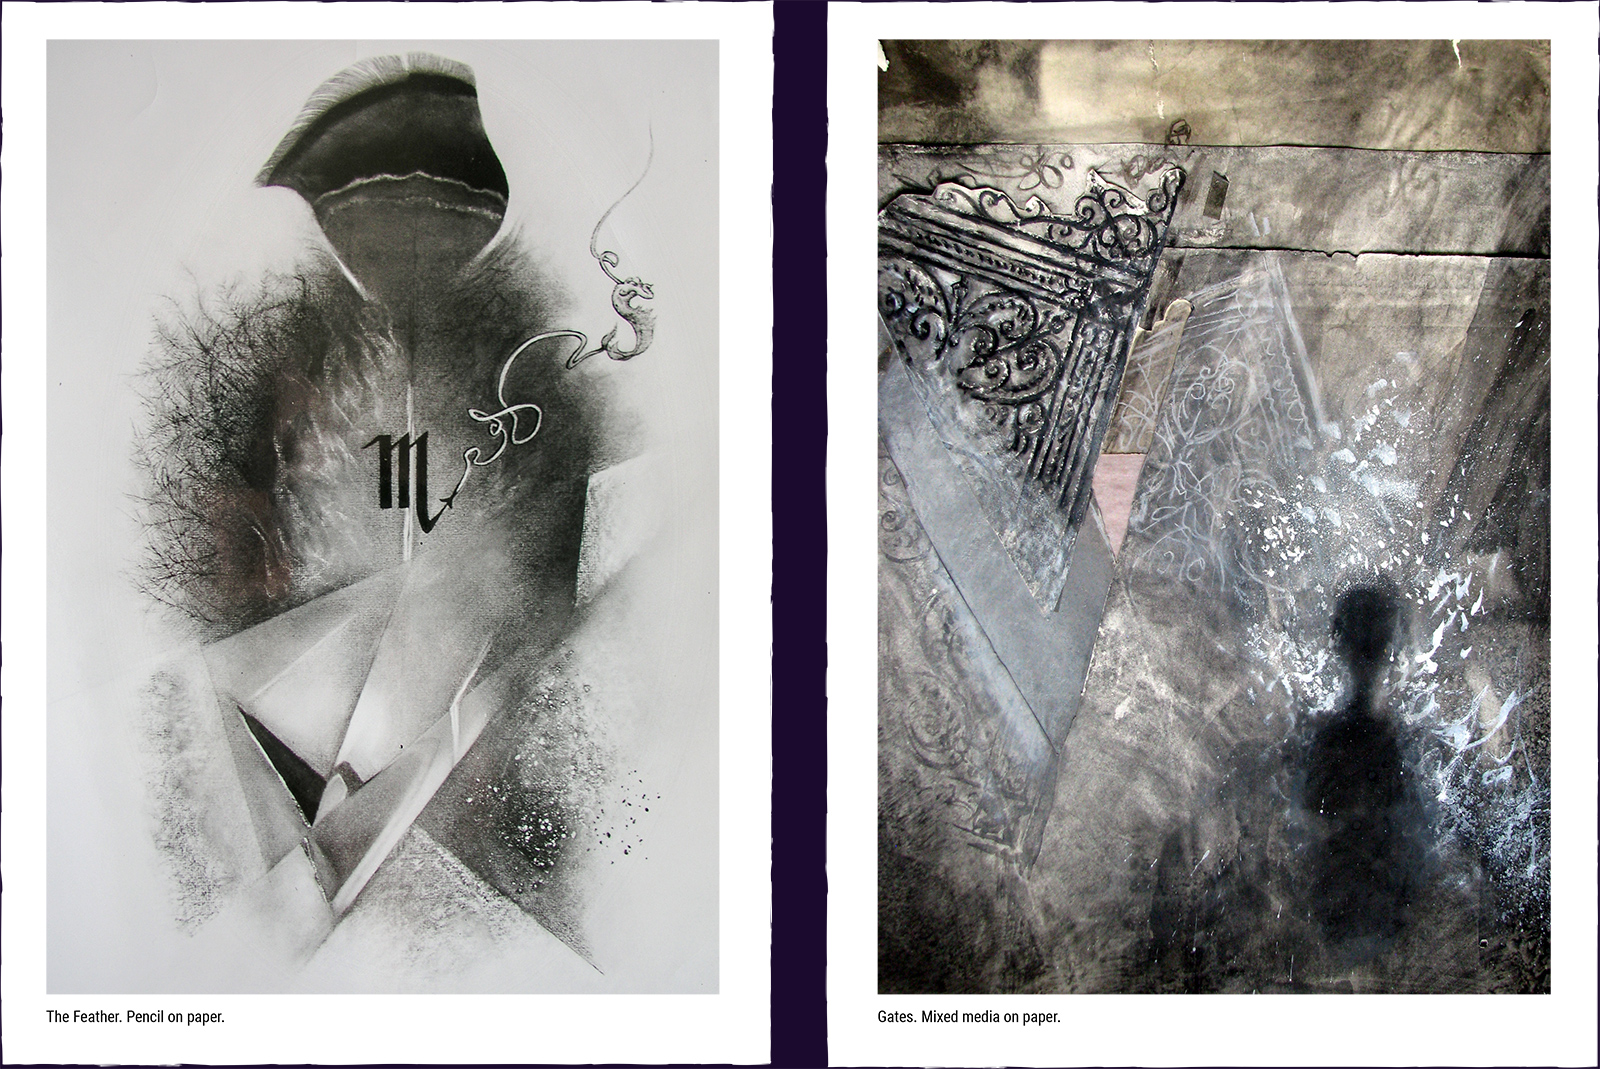 Two mystery paintings. (1) The Feather. Pencil on paper. (2) Gates. Mixed media on paper.